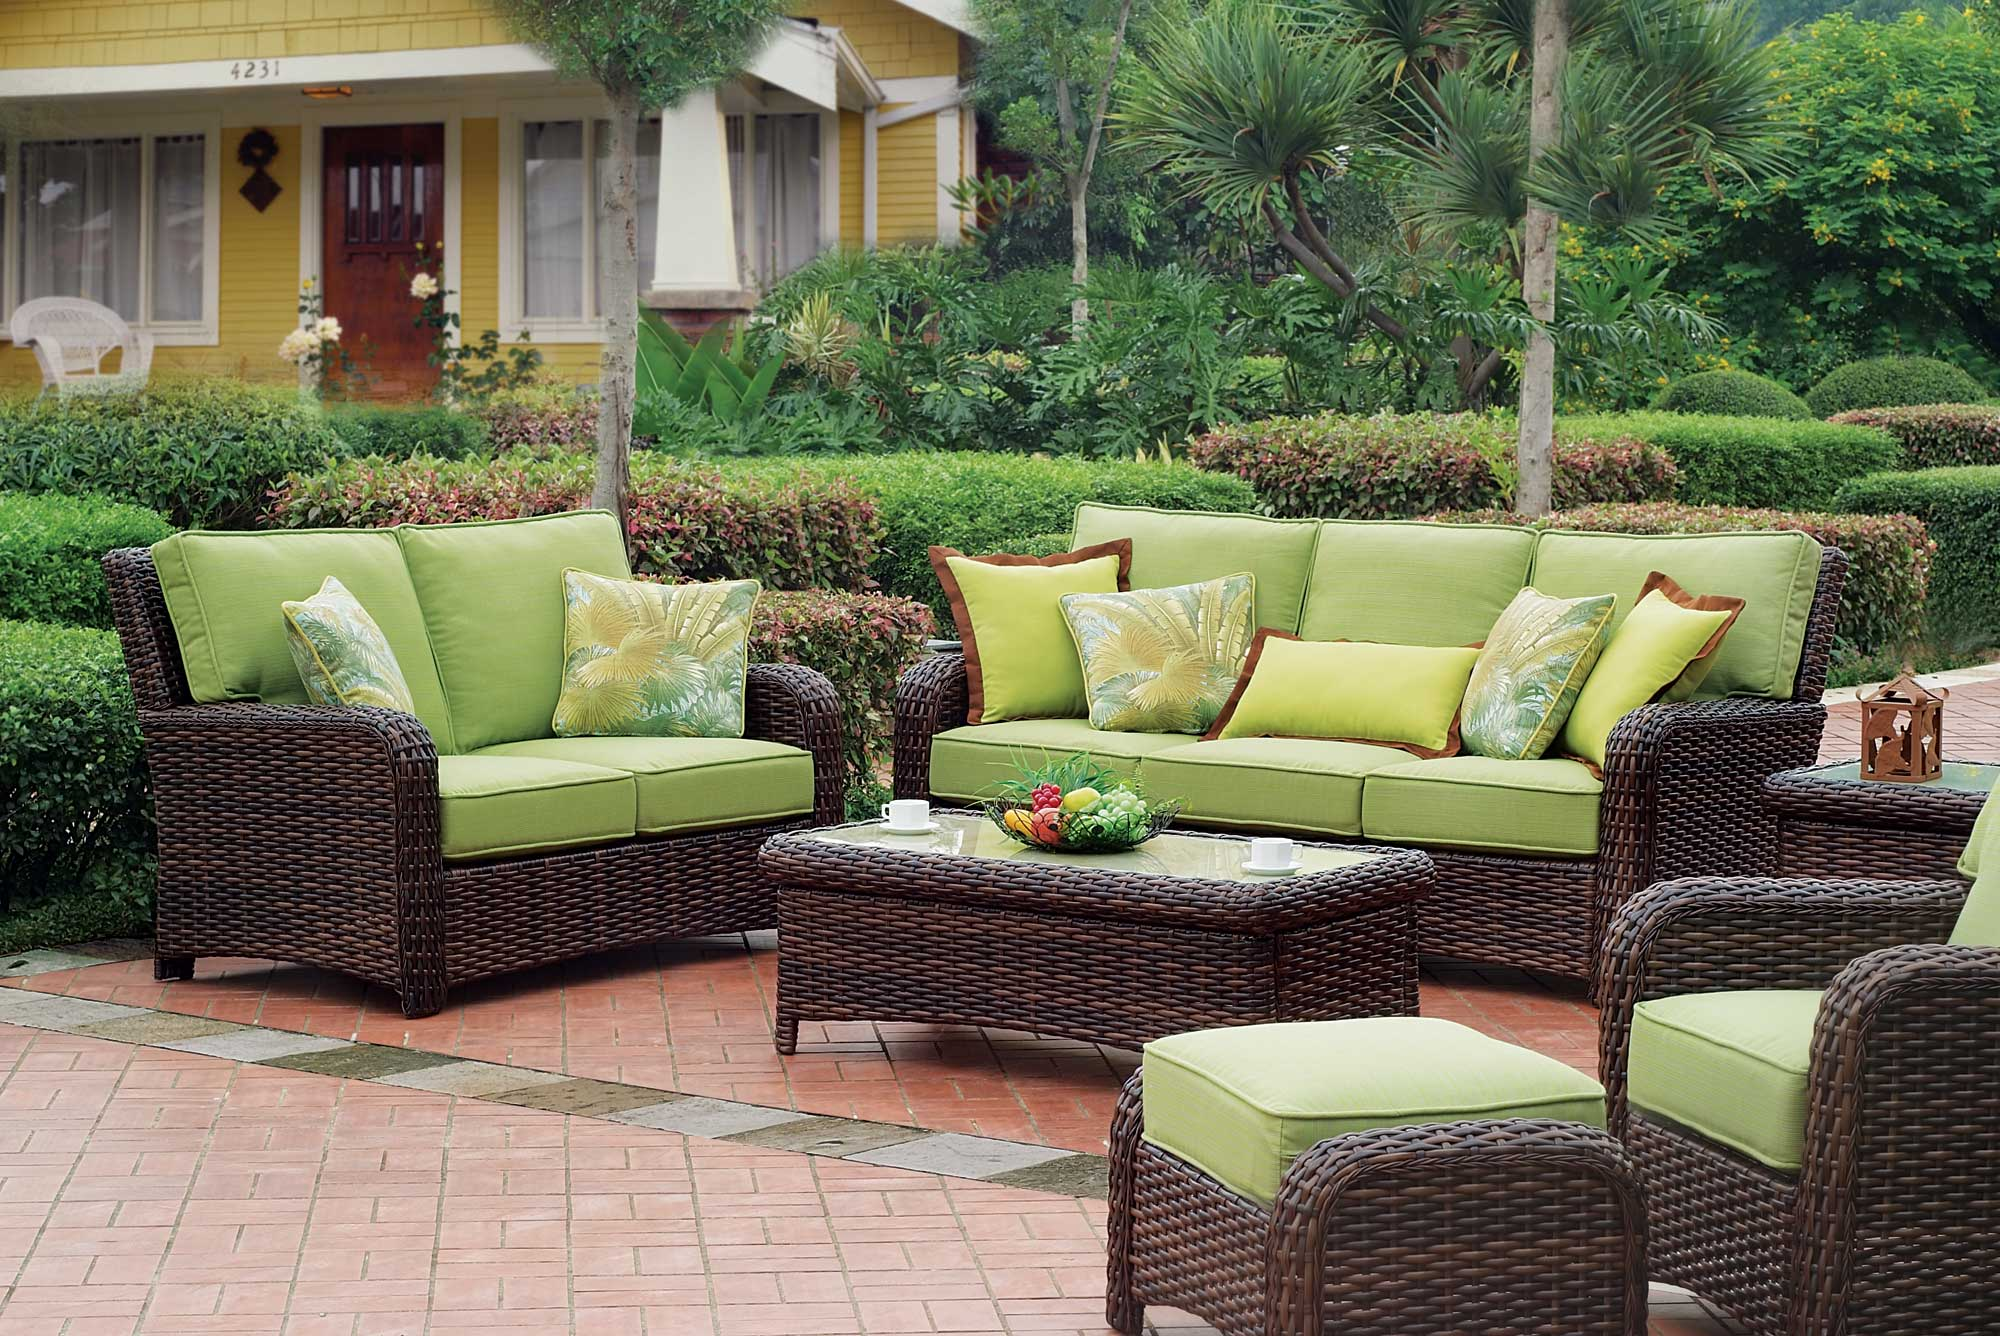 Best Patio Furniture The Best Choice For Patio Furniture